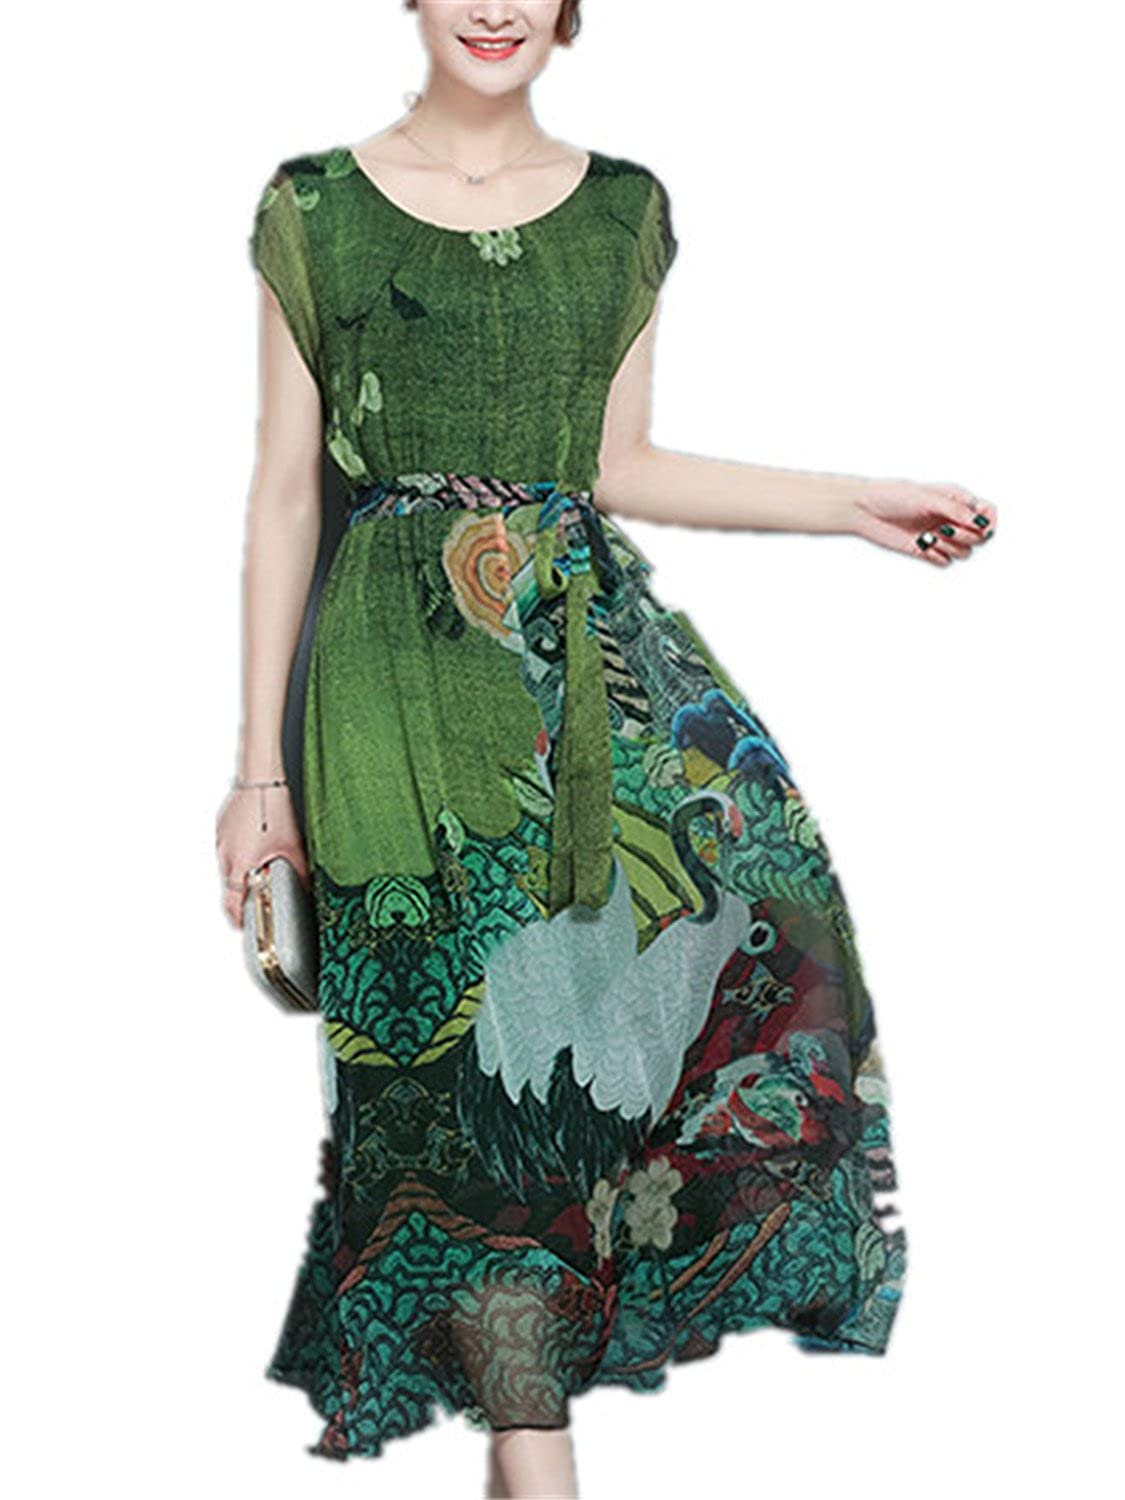 c2b4d15d4b Gomis Spring Summer Green Vintage Floral Print Dresses Women O-Neck Short  Sleeve Silk Dress with Sashes Mid-Calf at Amazon Women s Clothing store